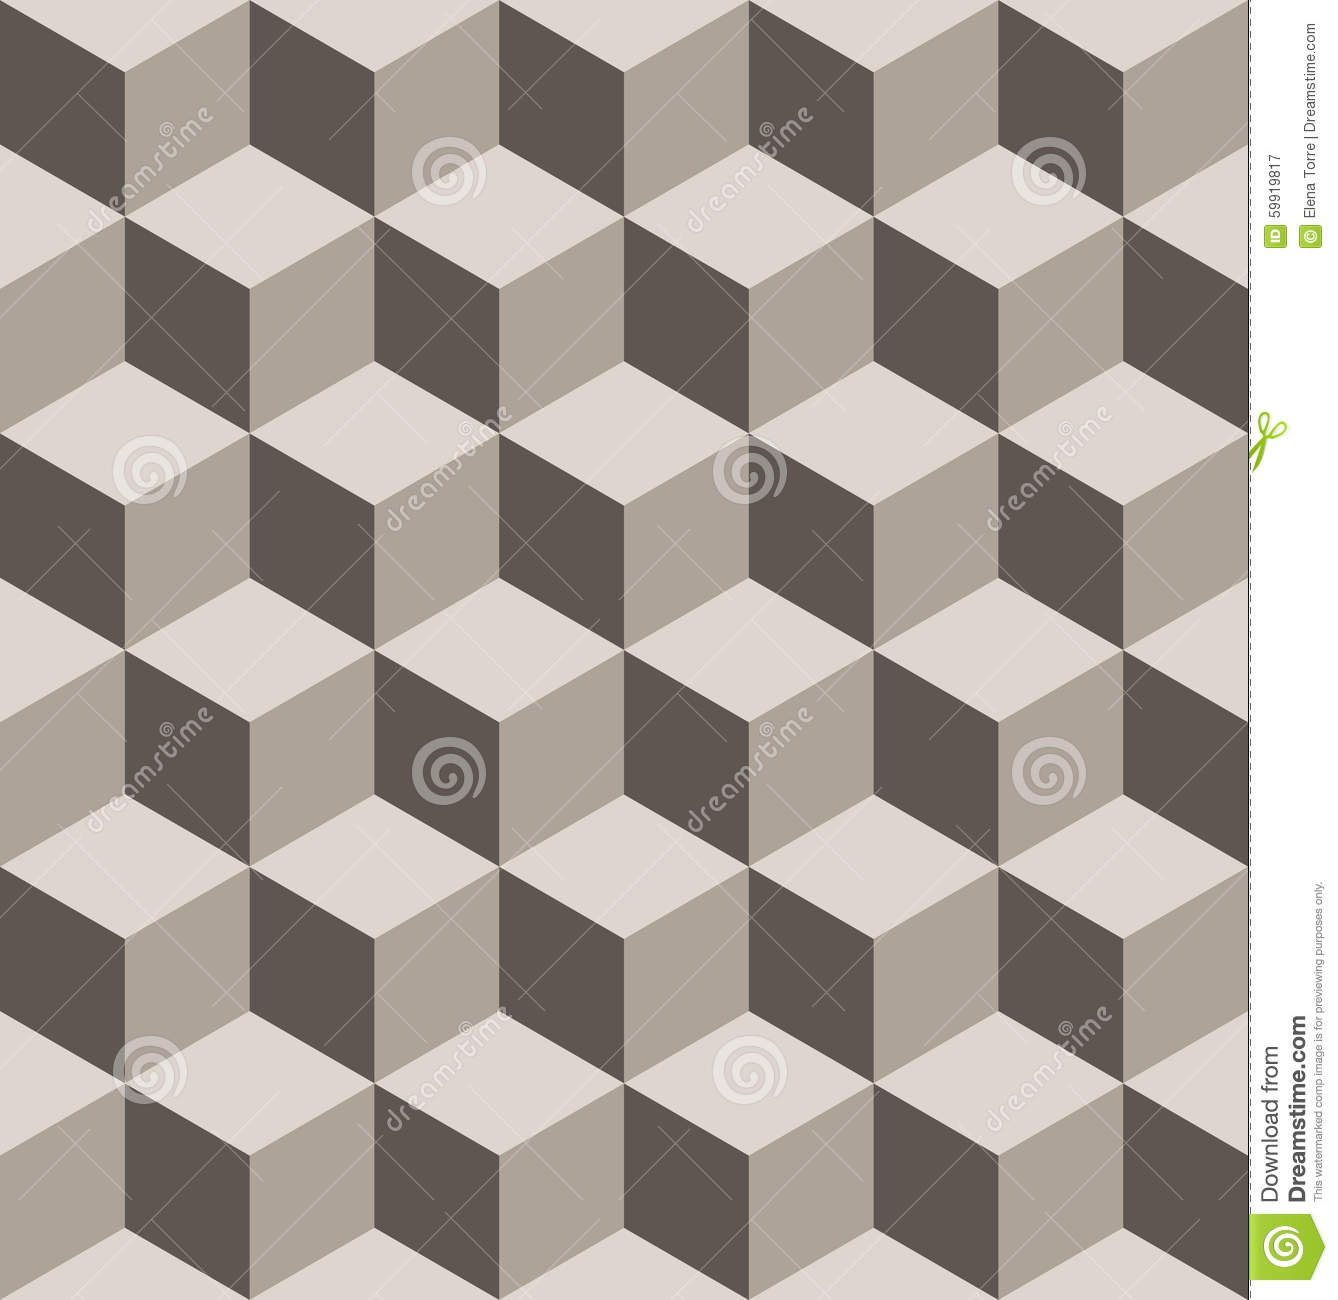 Seamless Isometric Cube Pattern Stock Vector - Image: 59919817